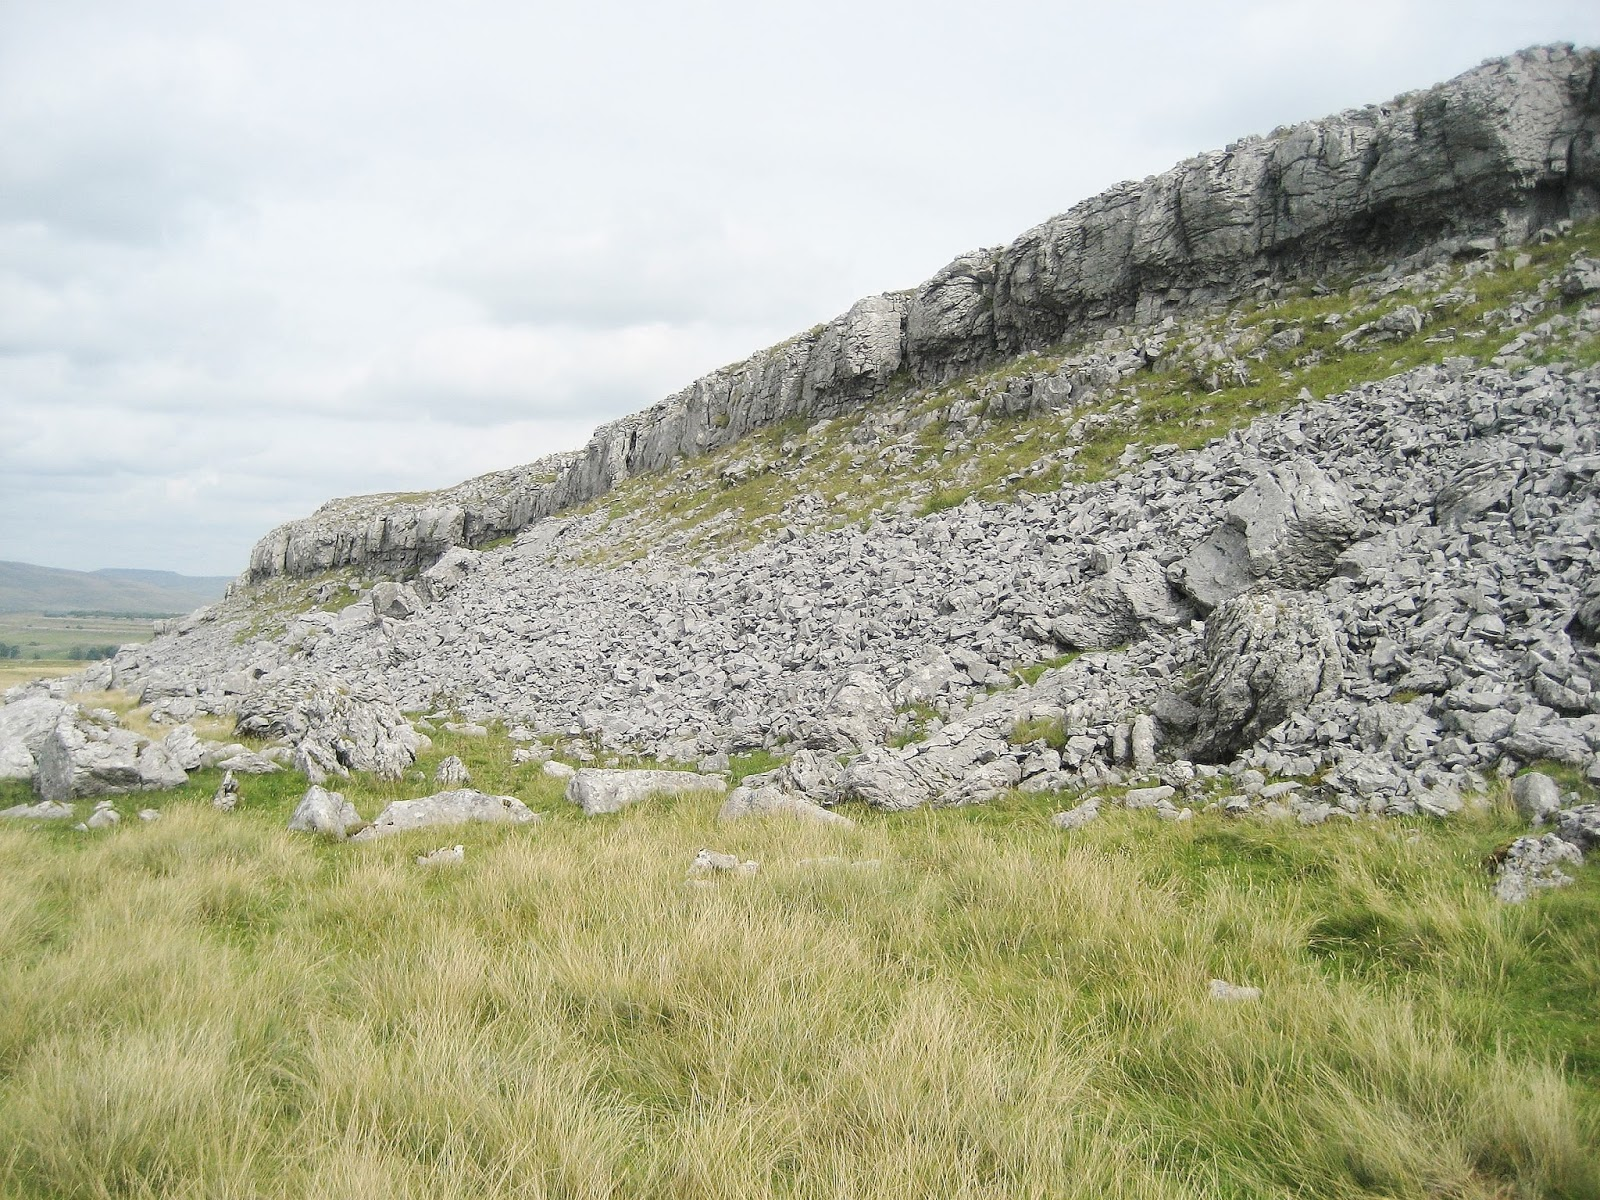 Classic scar of Gordale Limestone with scree apron within the Great Scar series on the east side of Chapel-le-Dale. Stephen Oldfield